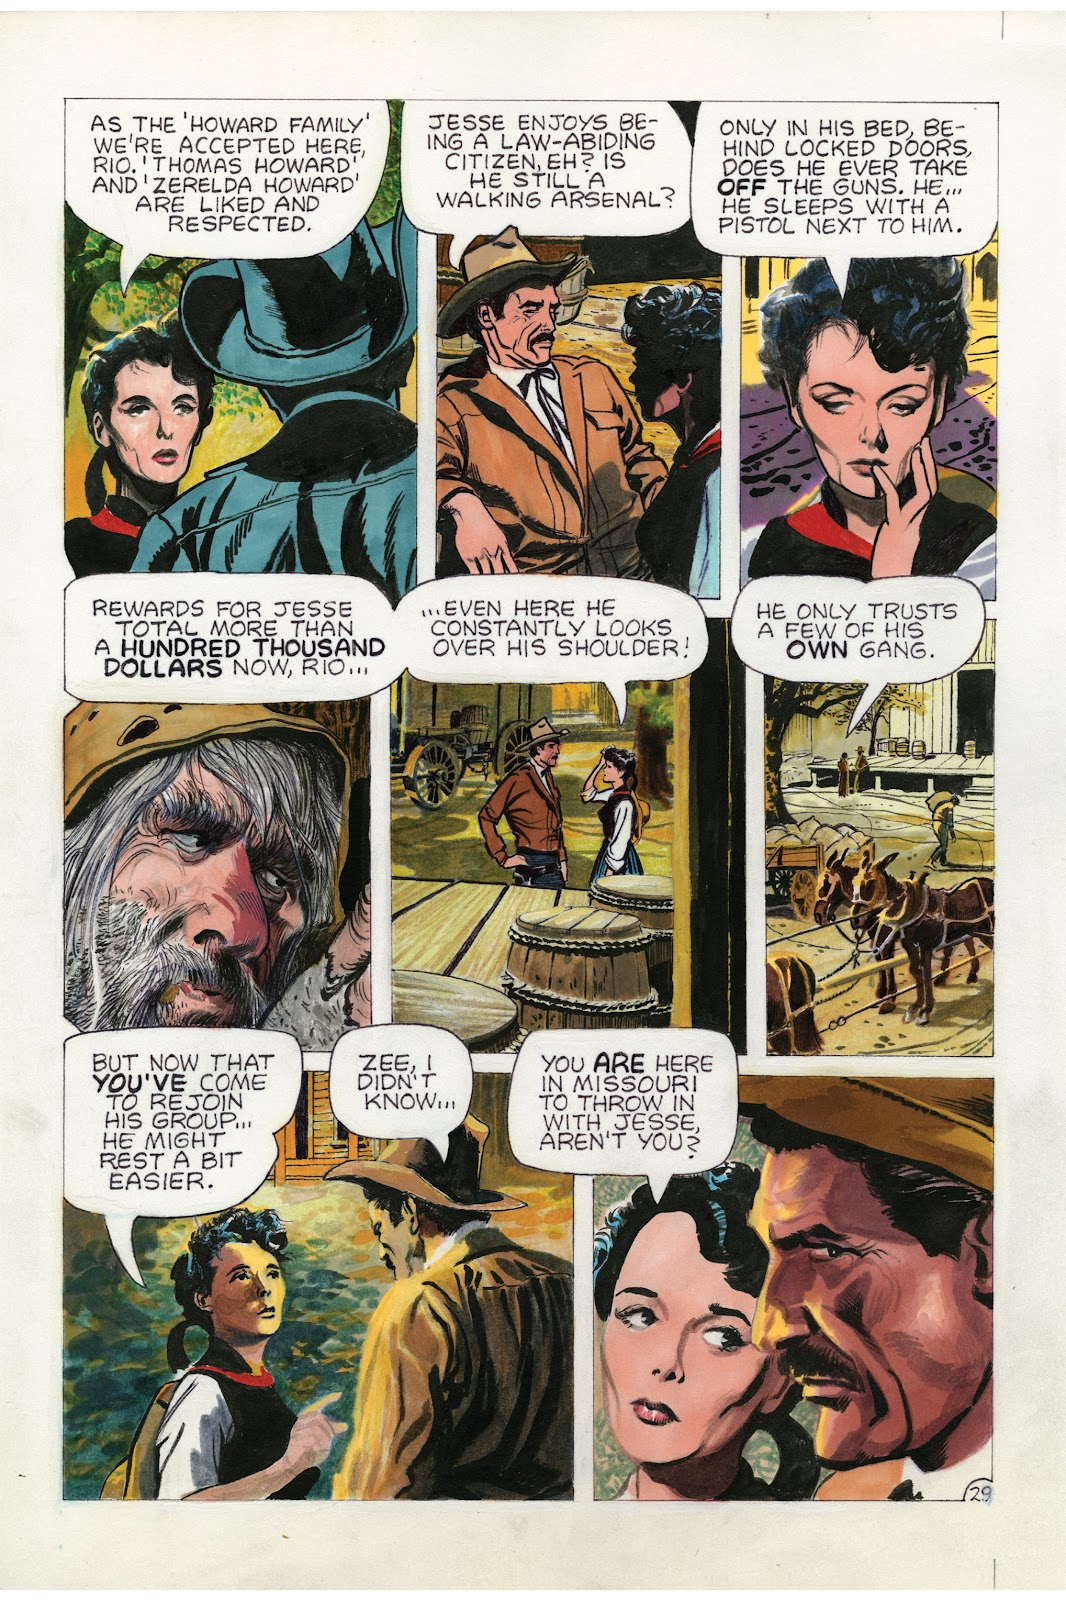 Read online Doug Wildey's Rio: The Complete Saga comic -  Issue # TPB (Part 1) - 95